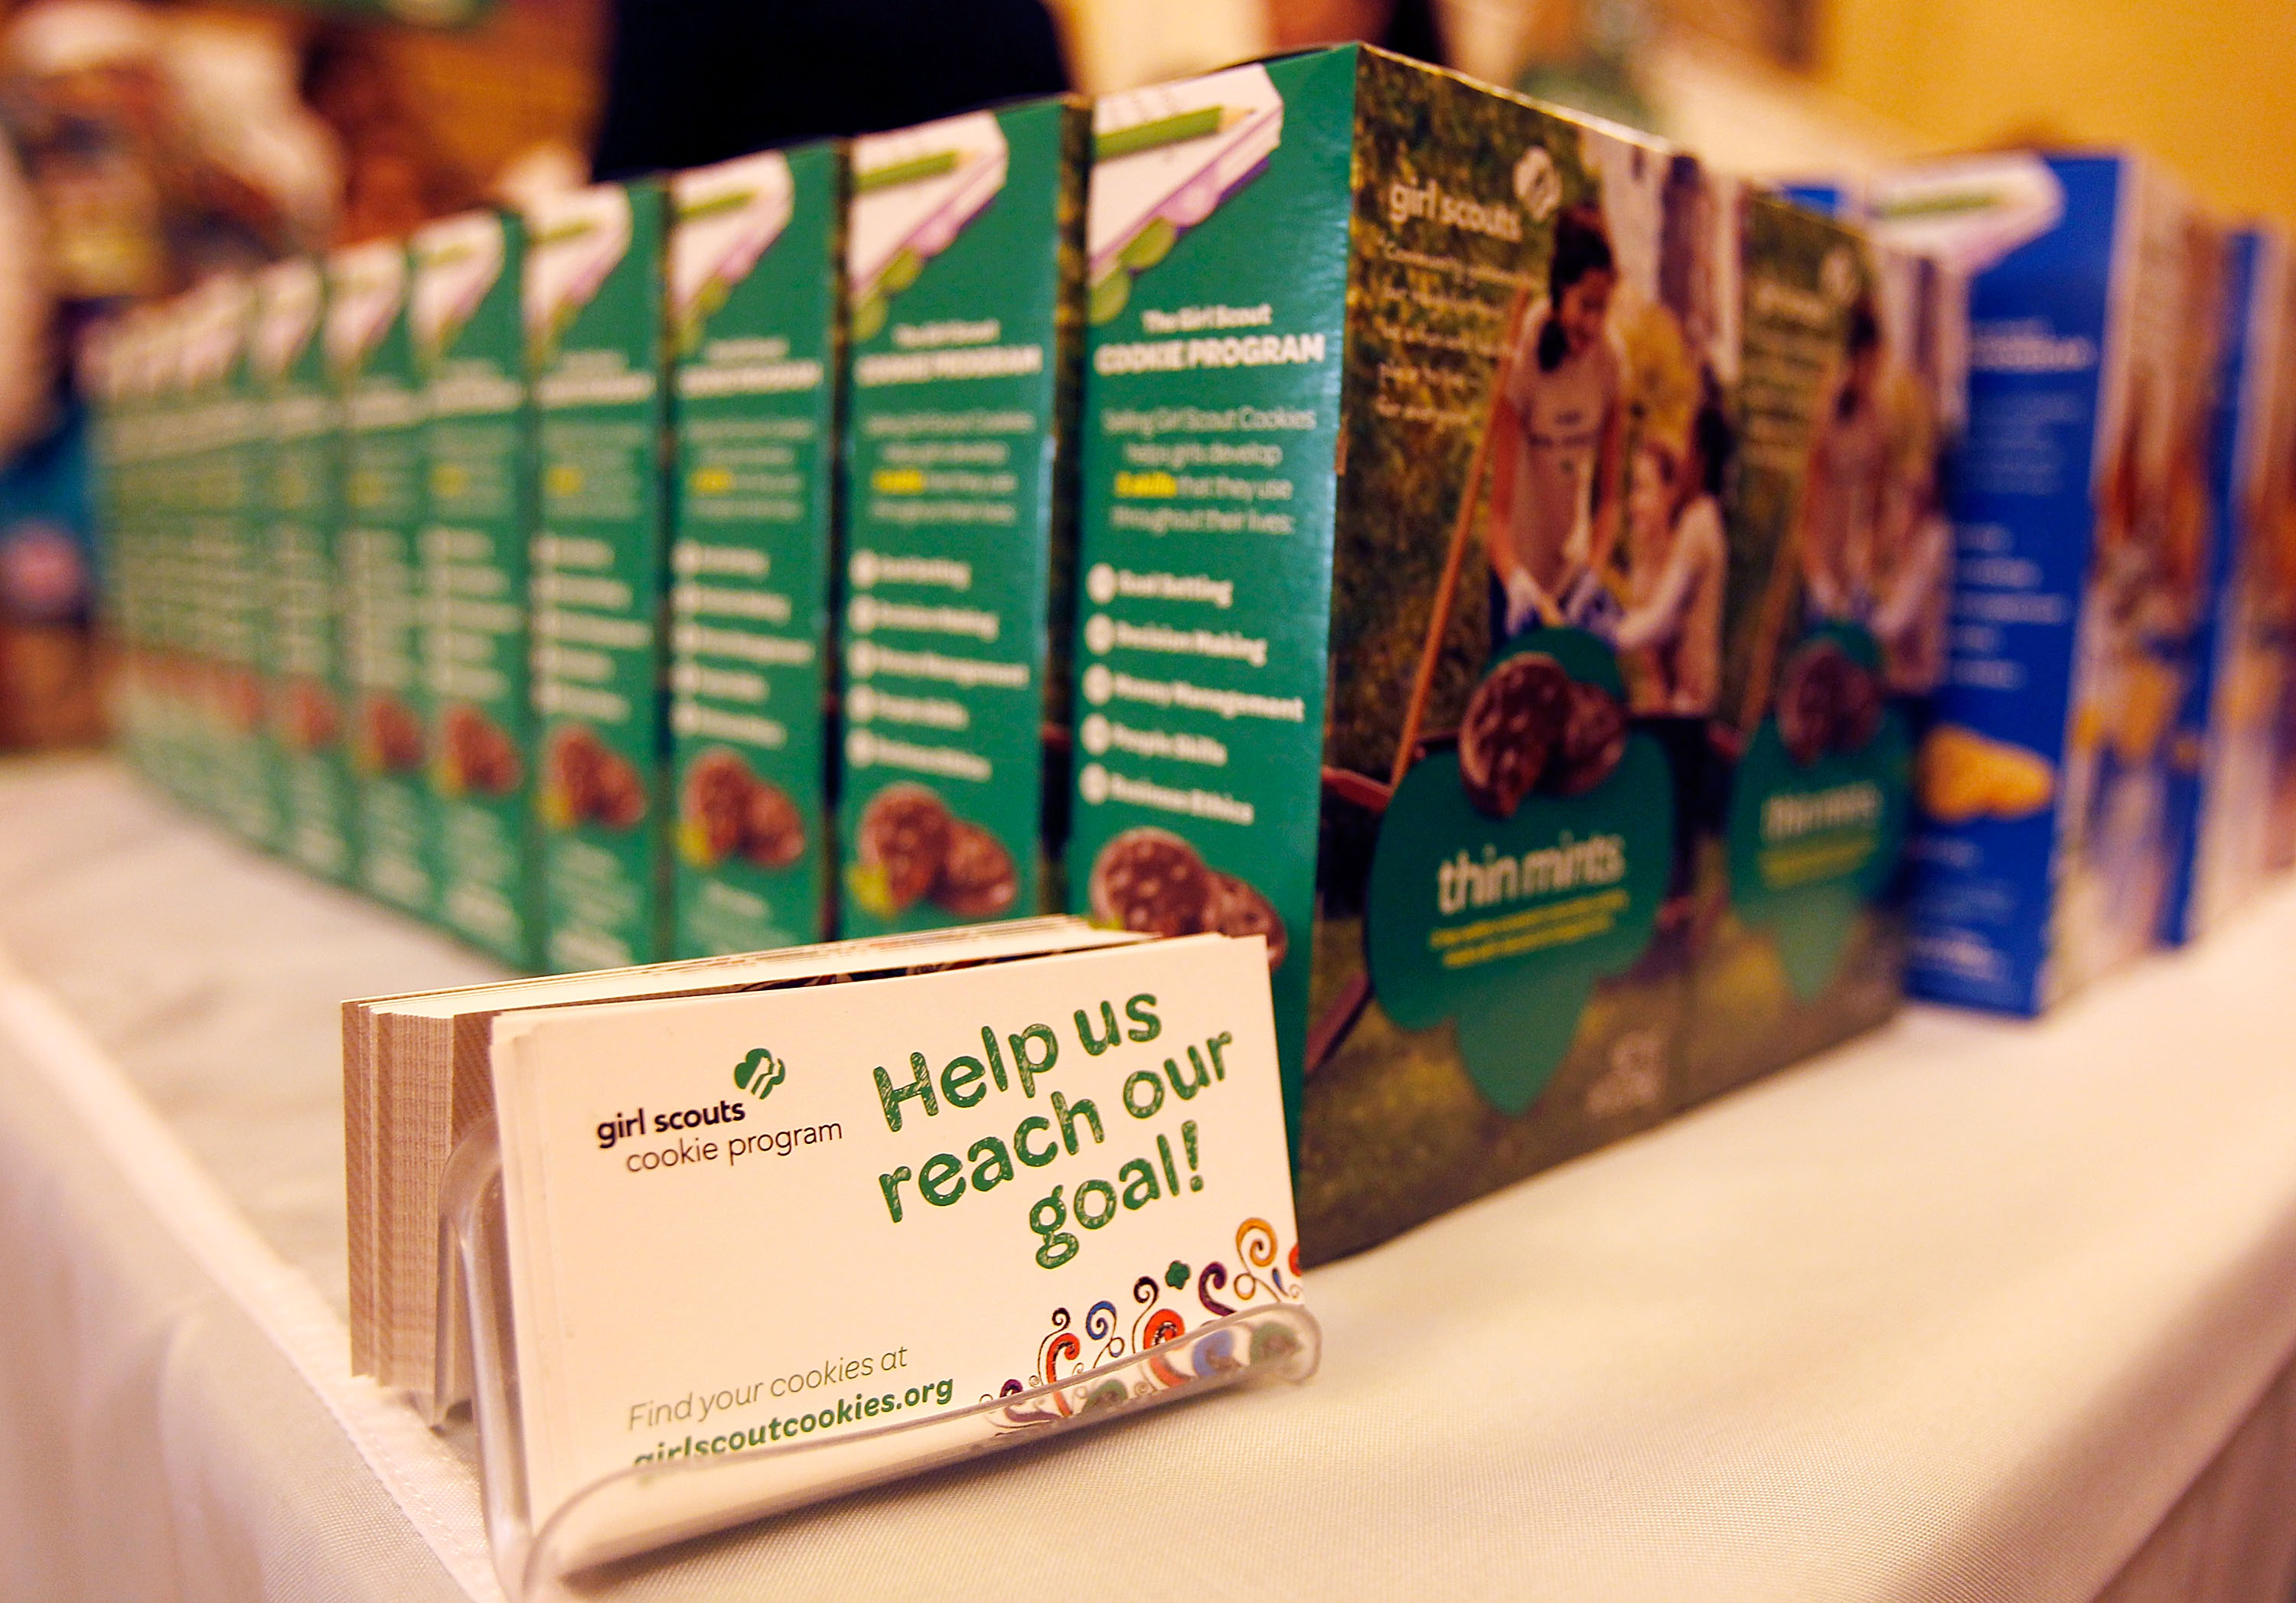 Girl Scout Cookies (Photo by Paul Morigi/Getty Images for Girl Scouts of the USA)